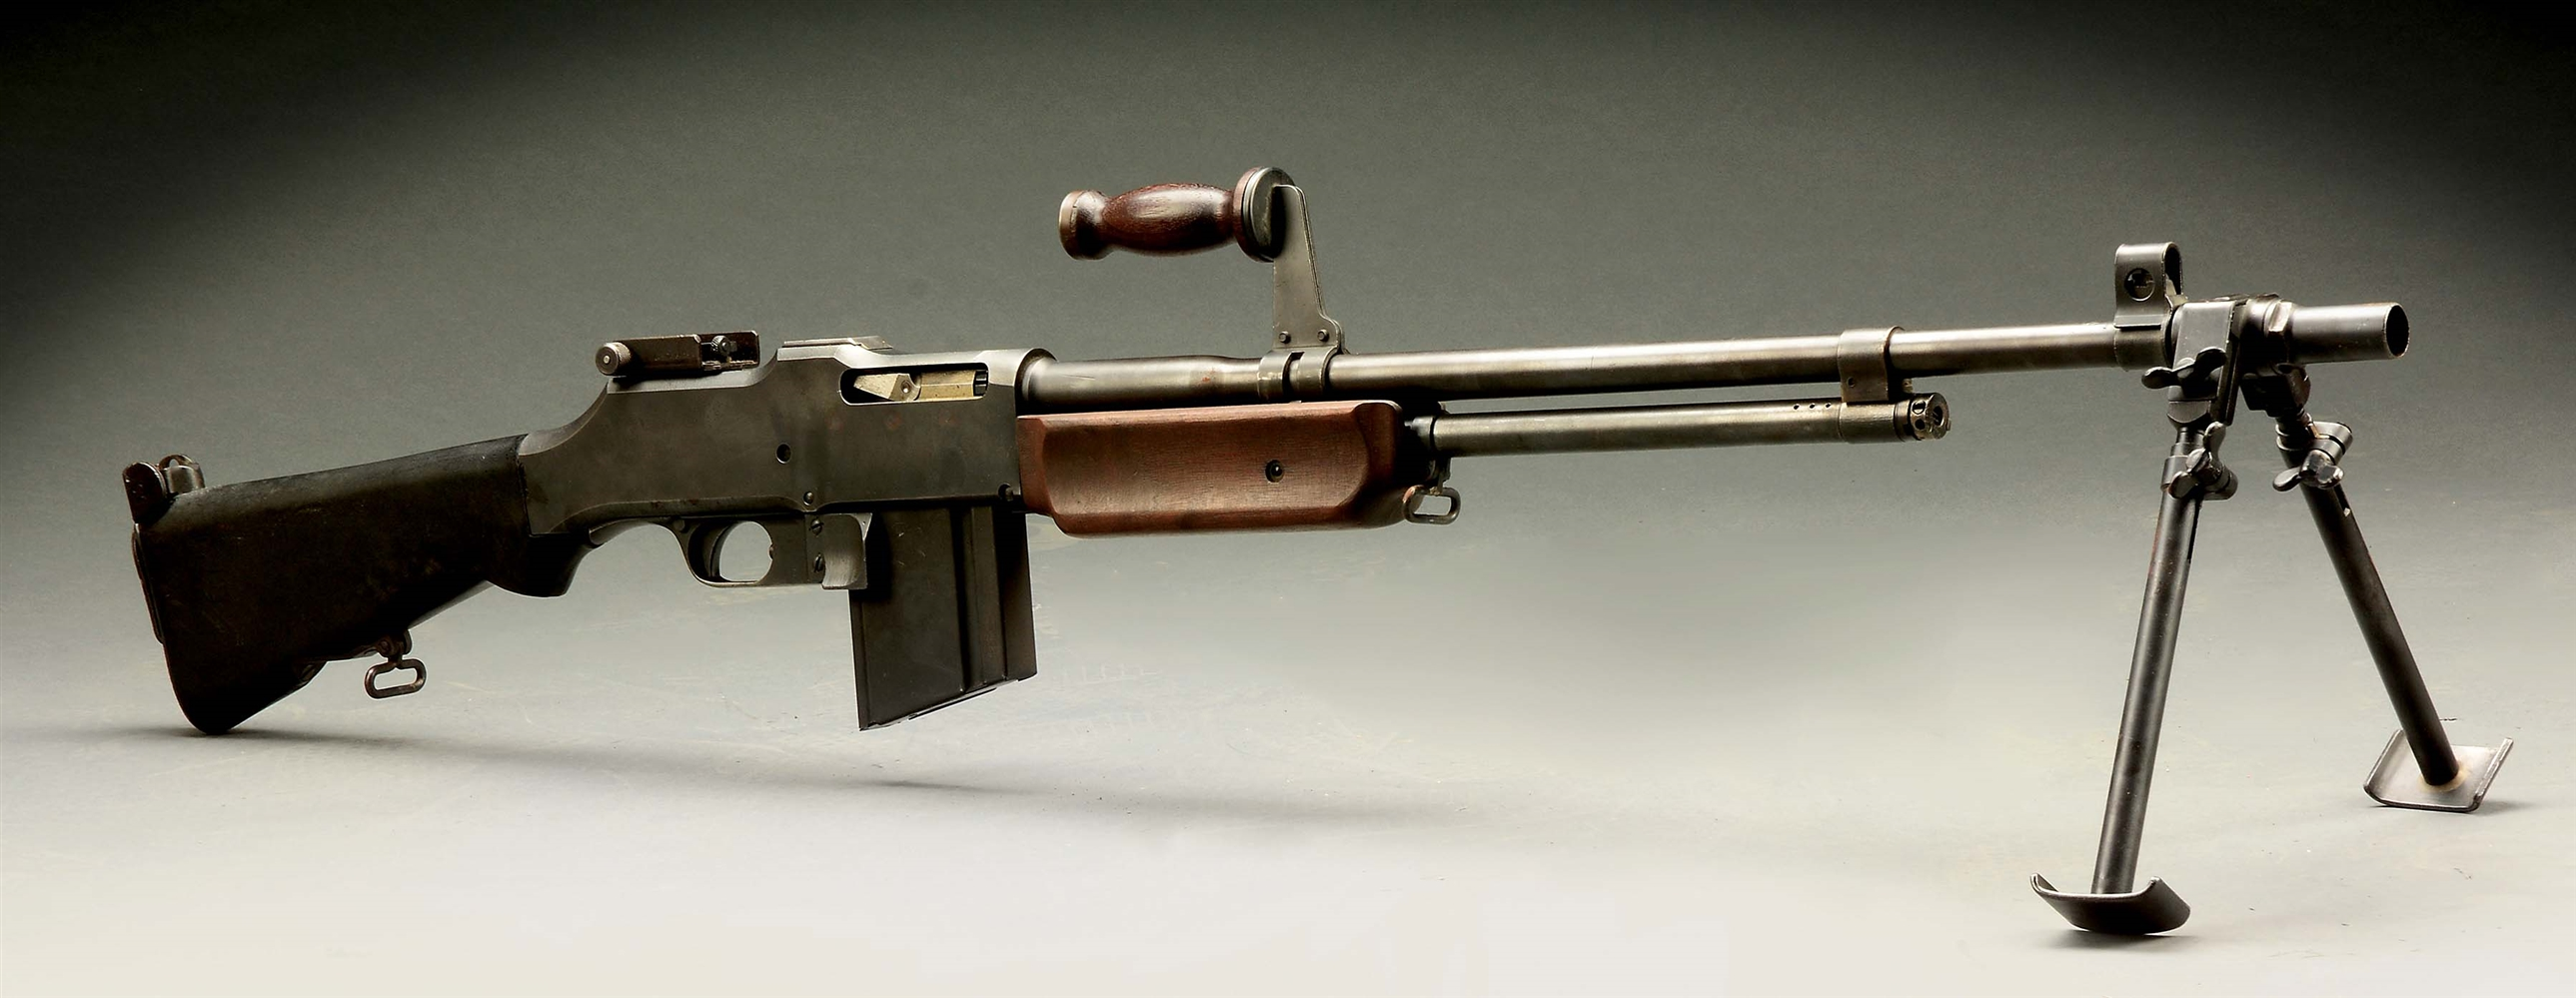 (N) GROUP INDUSTRIES 1918A2 BROWNING AUTOMATIC RIFLE MACHINE GUN (FULLY TRANSFERABLE).